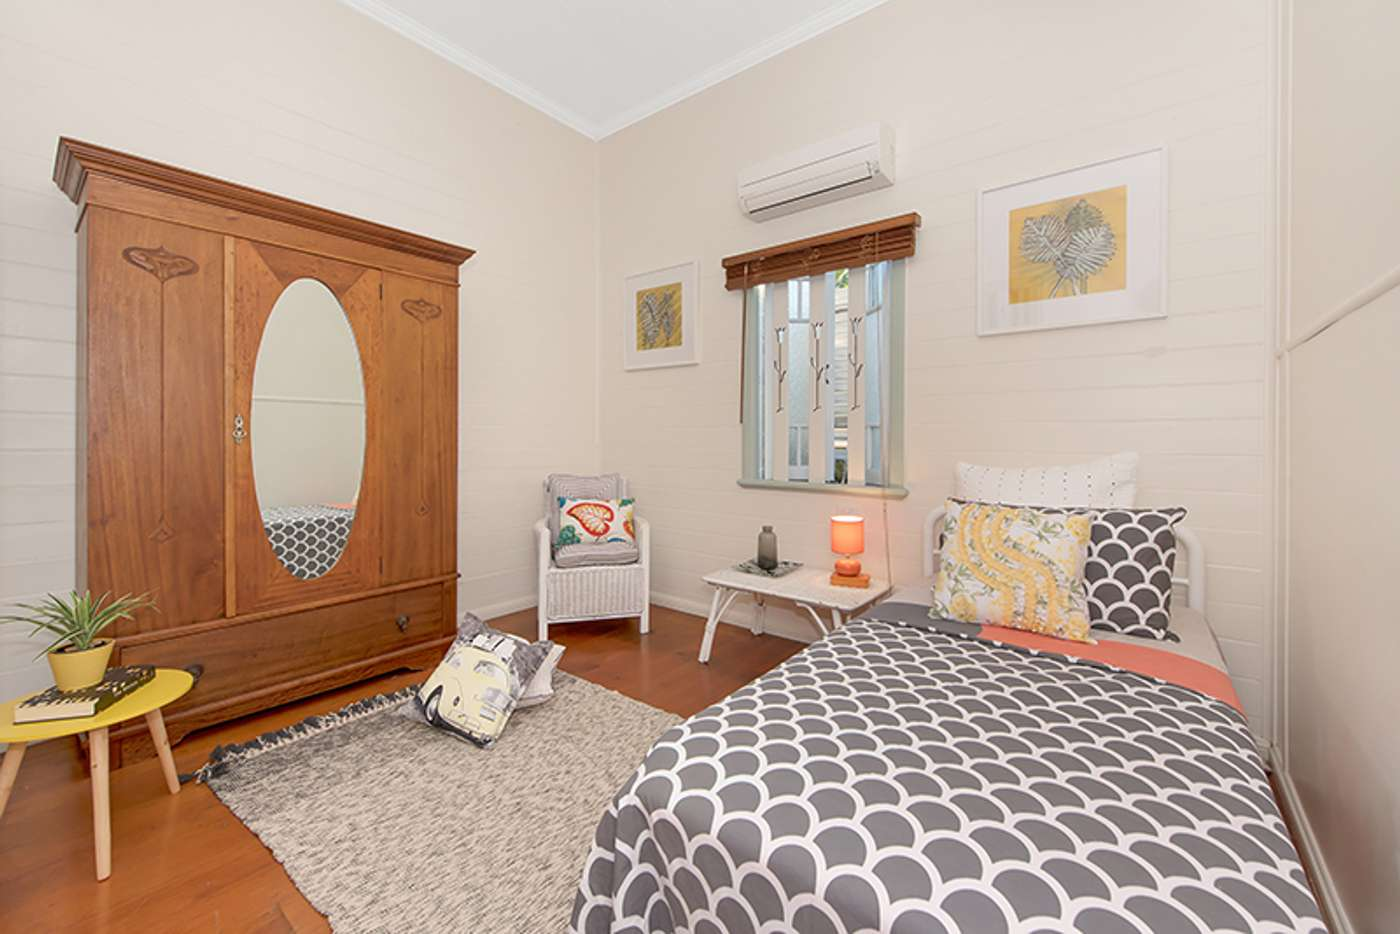 Sixth view of Homely house listing, 153 Francis Street, West End QLD 4810